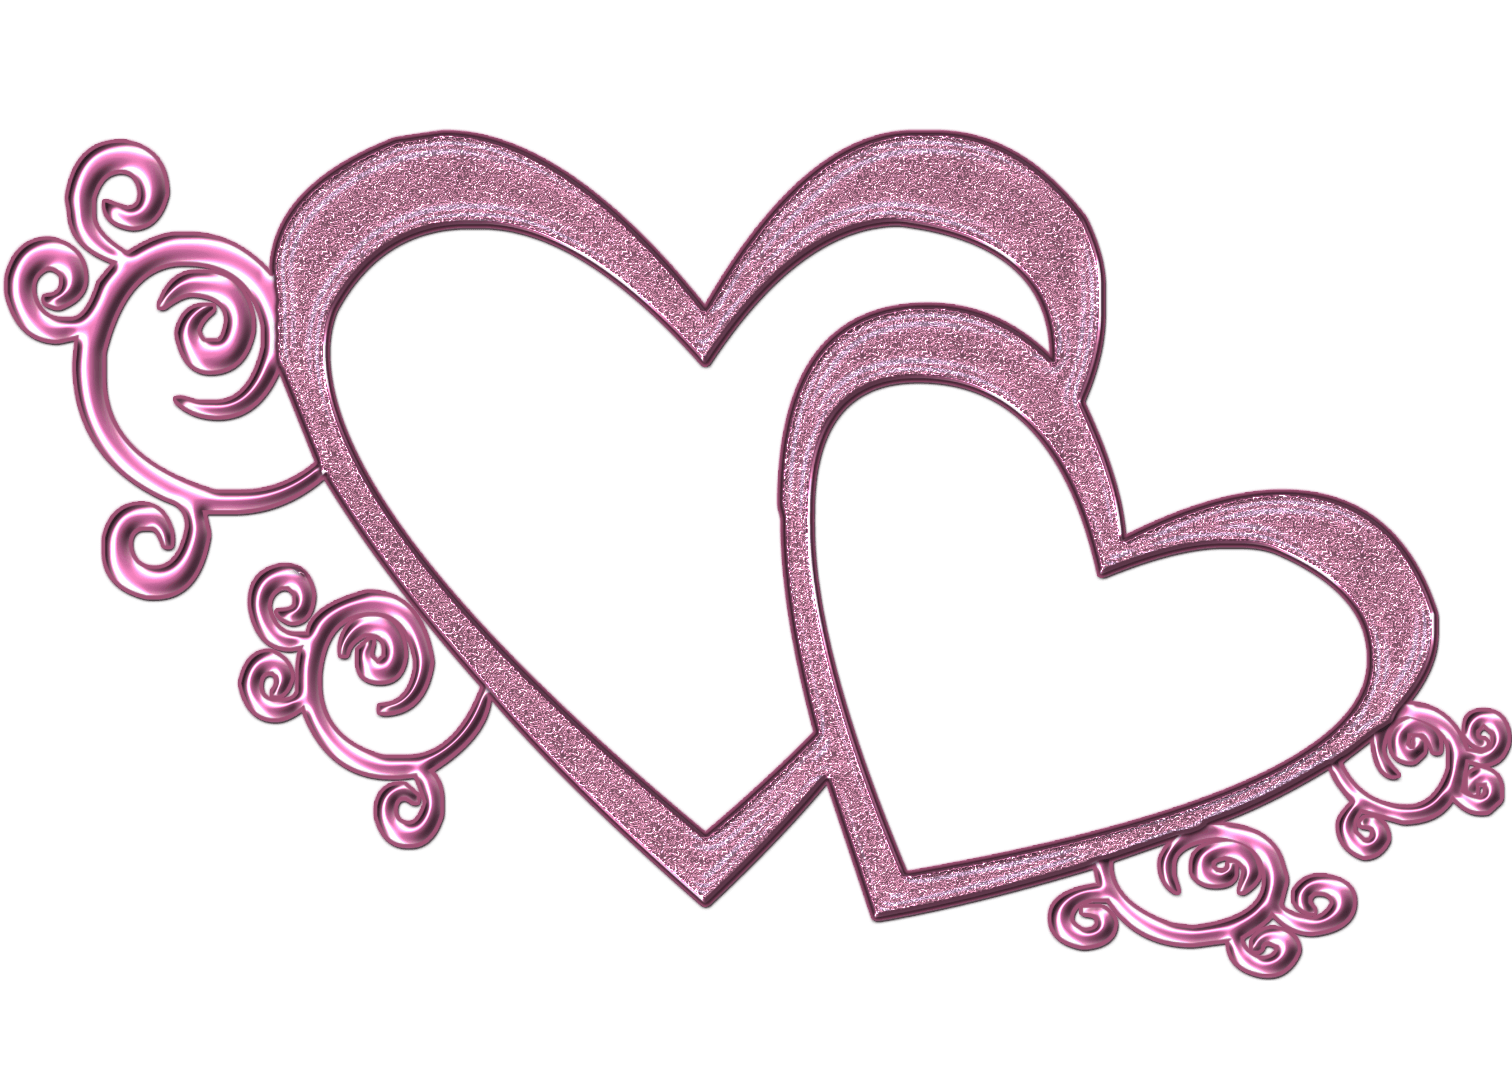 Rustic heart clipart clipart royalty free Intertwined Hearts Cliparts Free collection | Download and share ... clipart royalty free